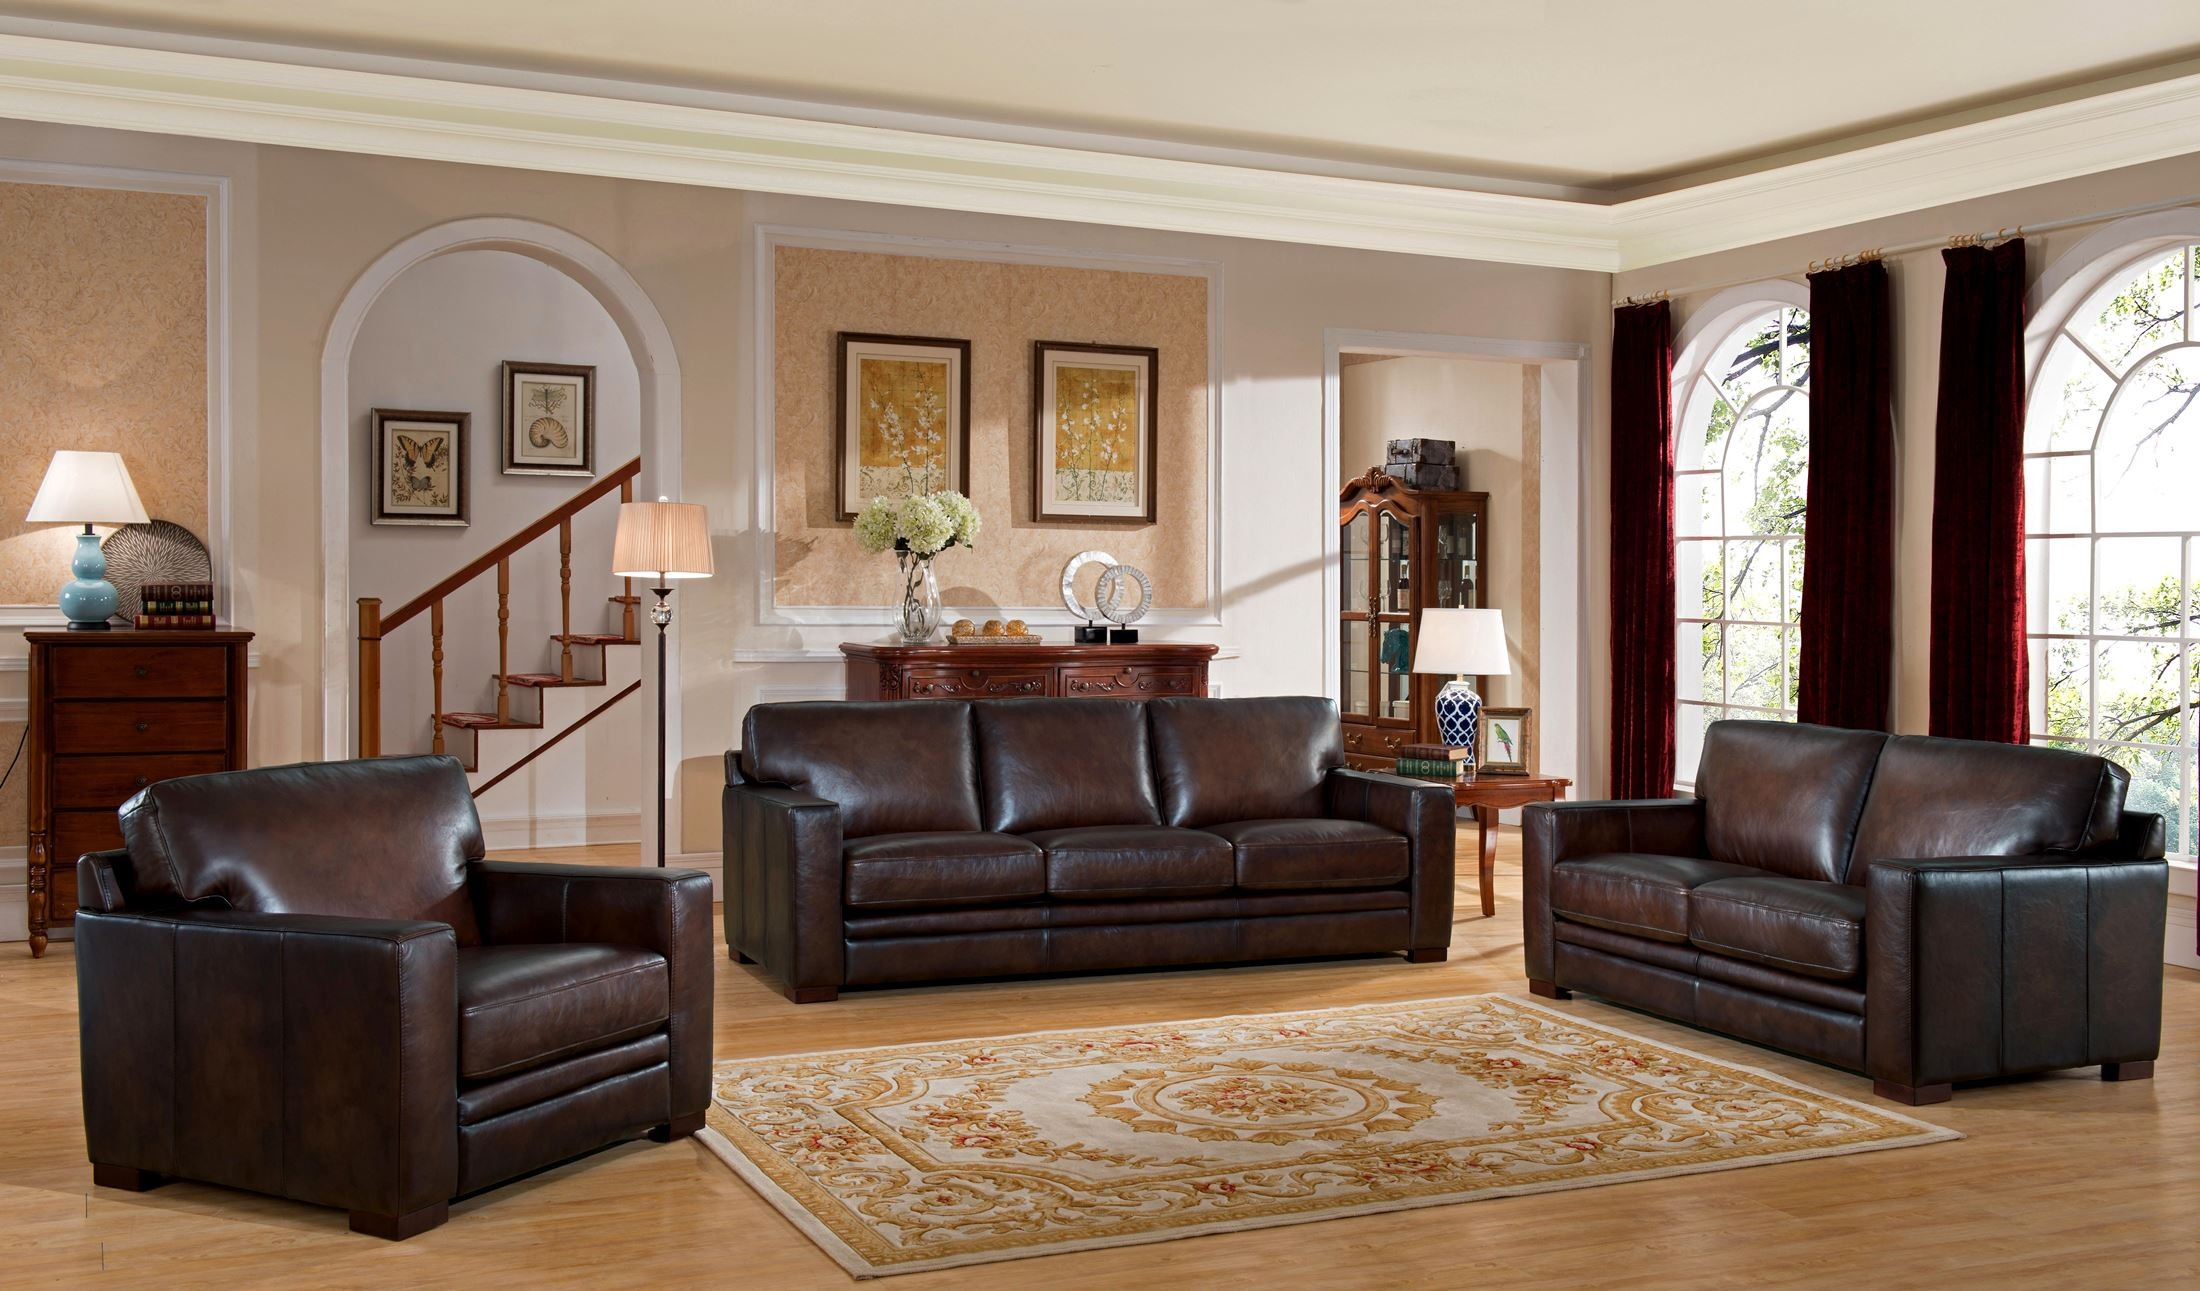 chatsworth brown leather living room set 9927s2828ls amax leather. Black Bedroom Furniture Sets. Home Design Ideas